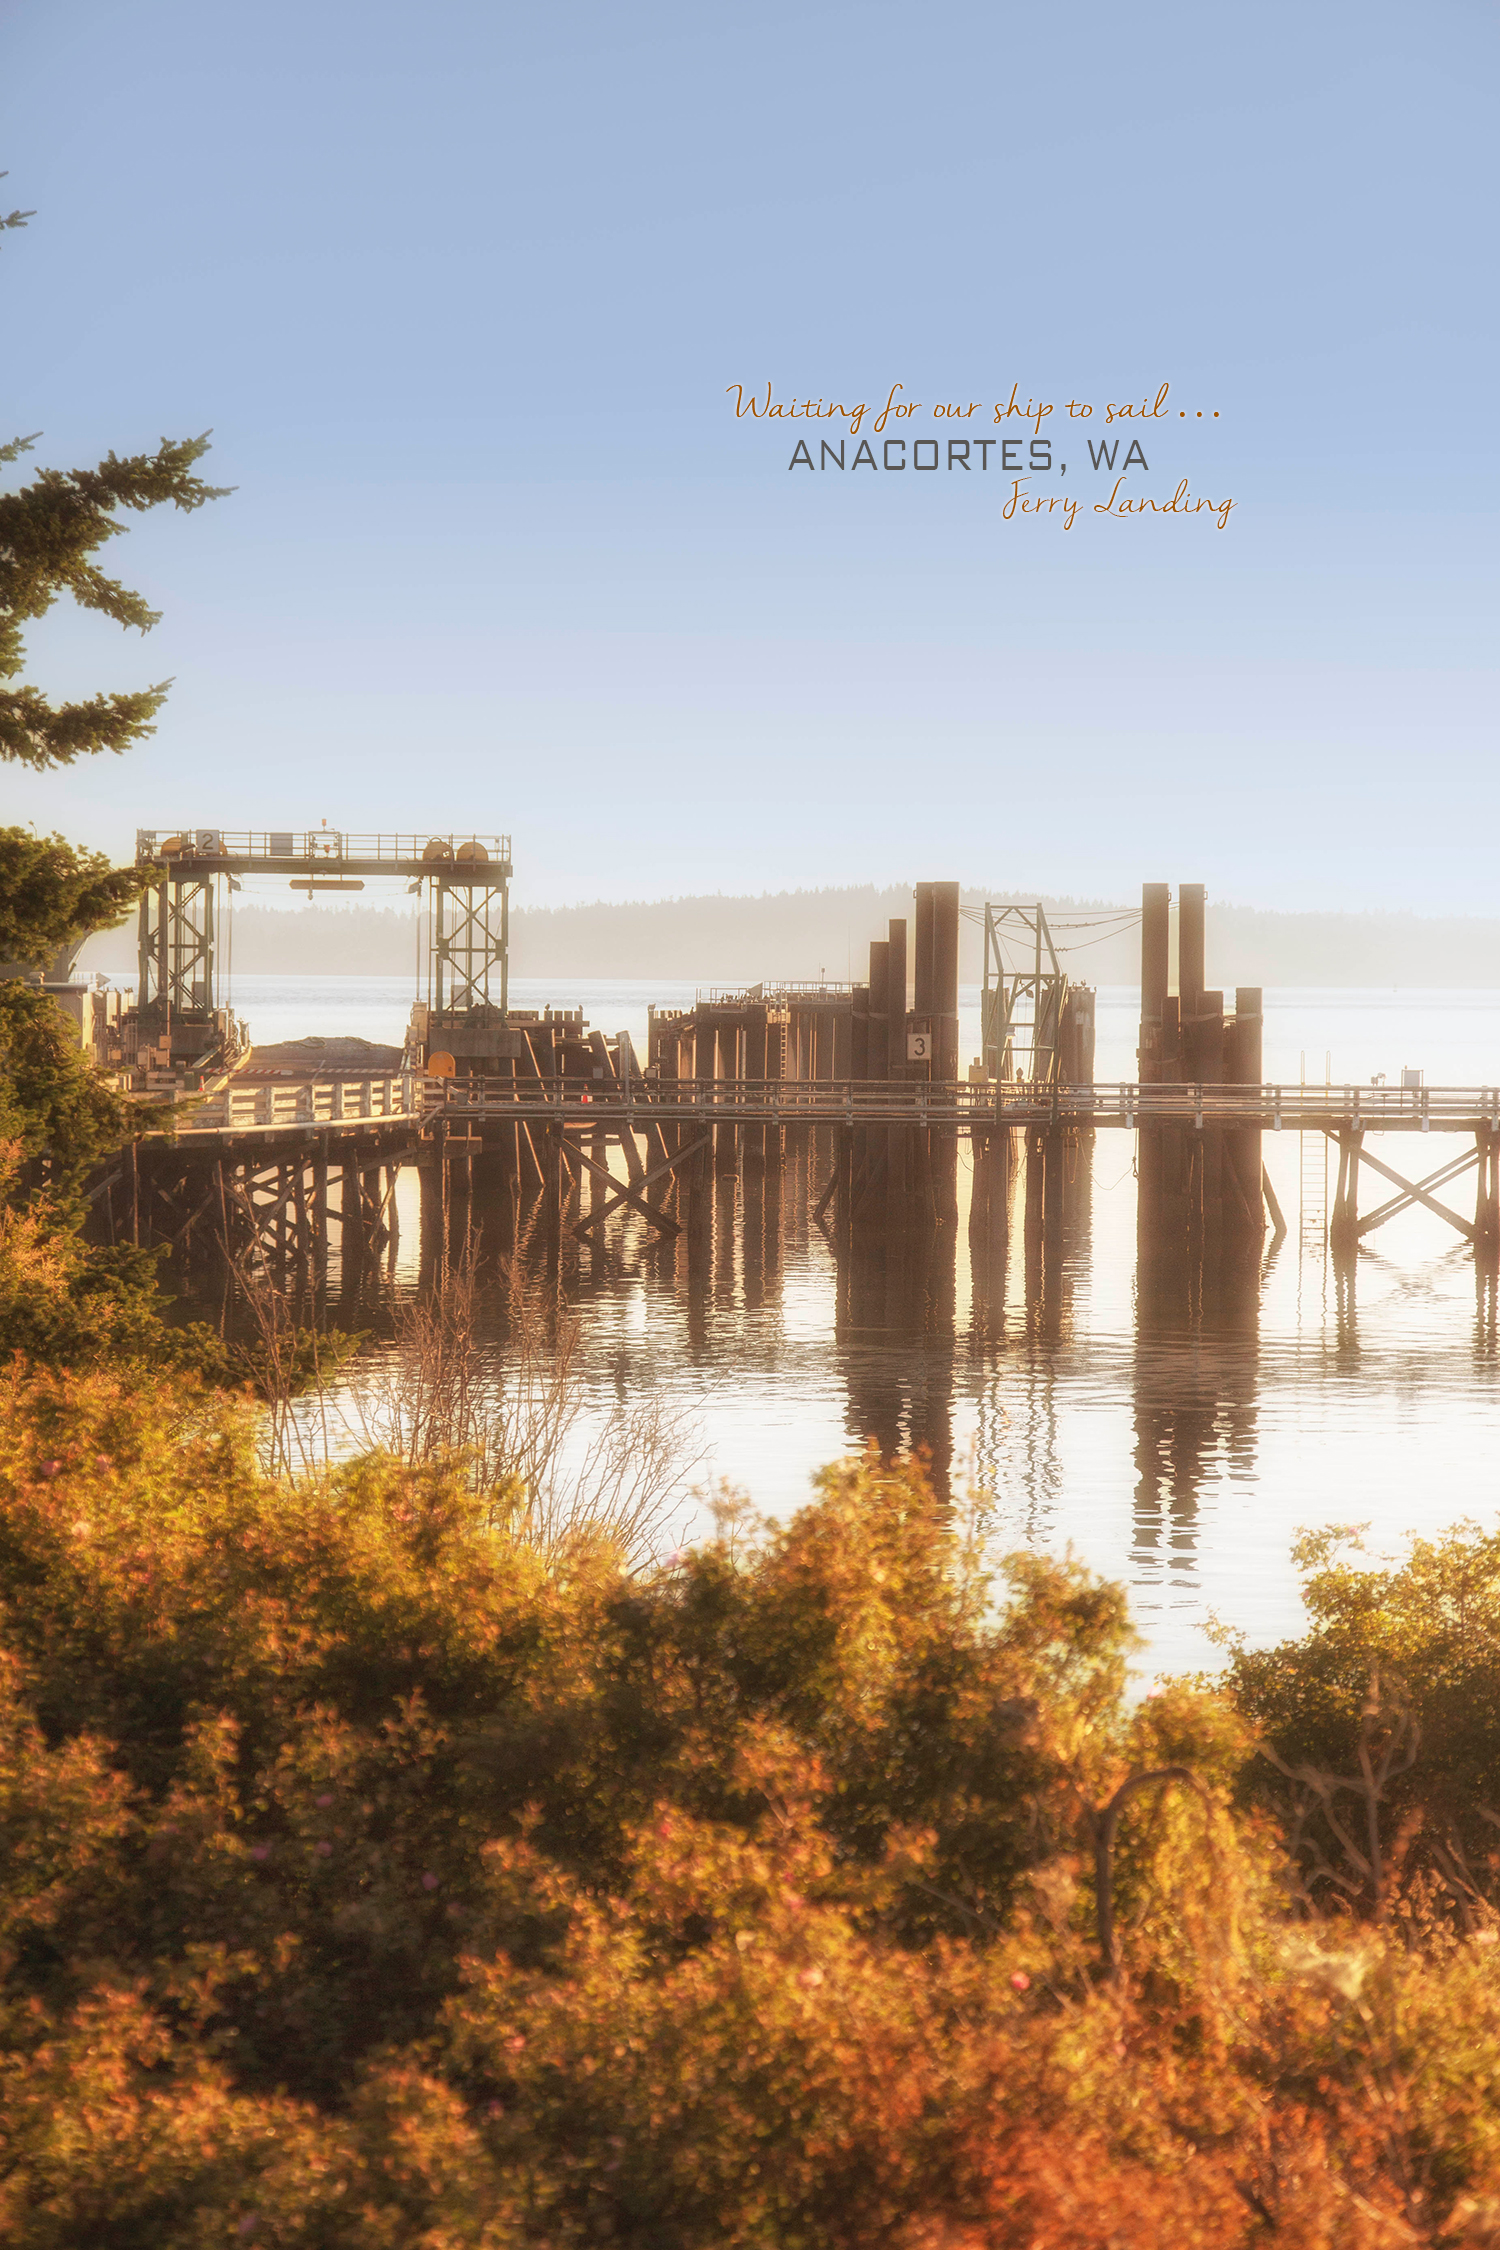 Anacortes ferry landing via J5MM.com